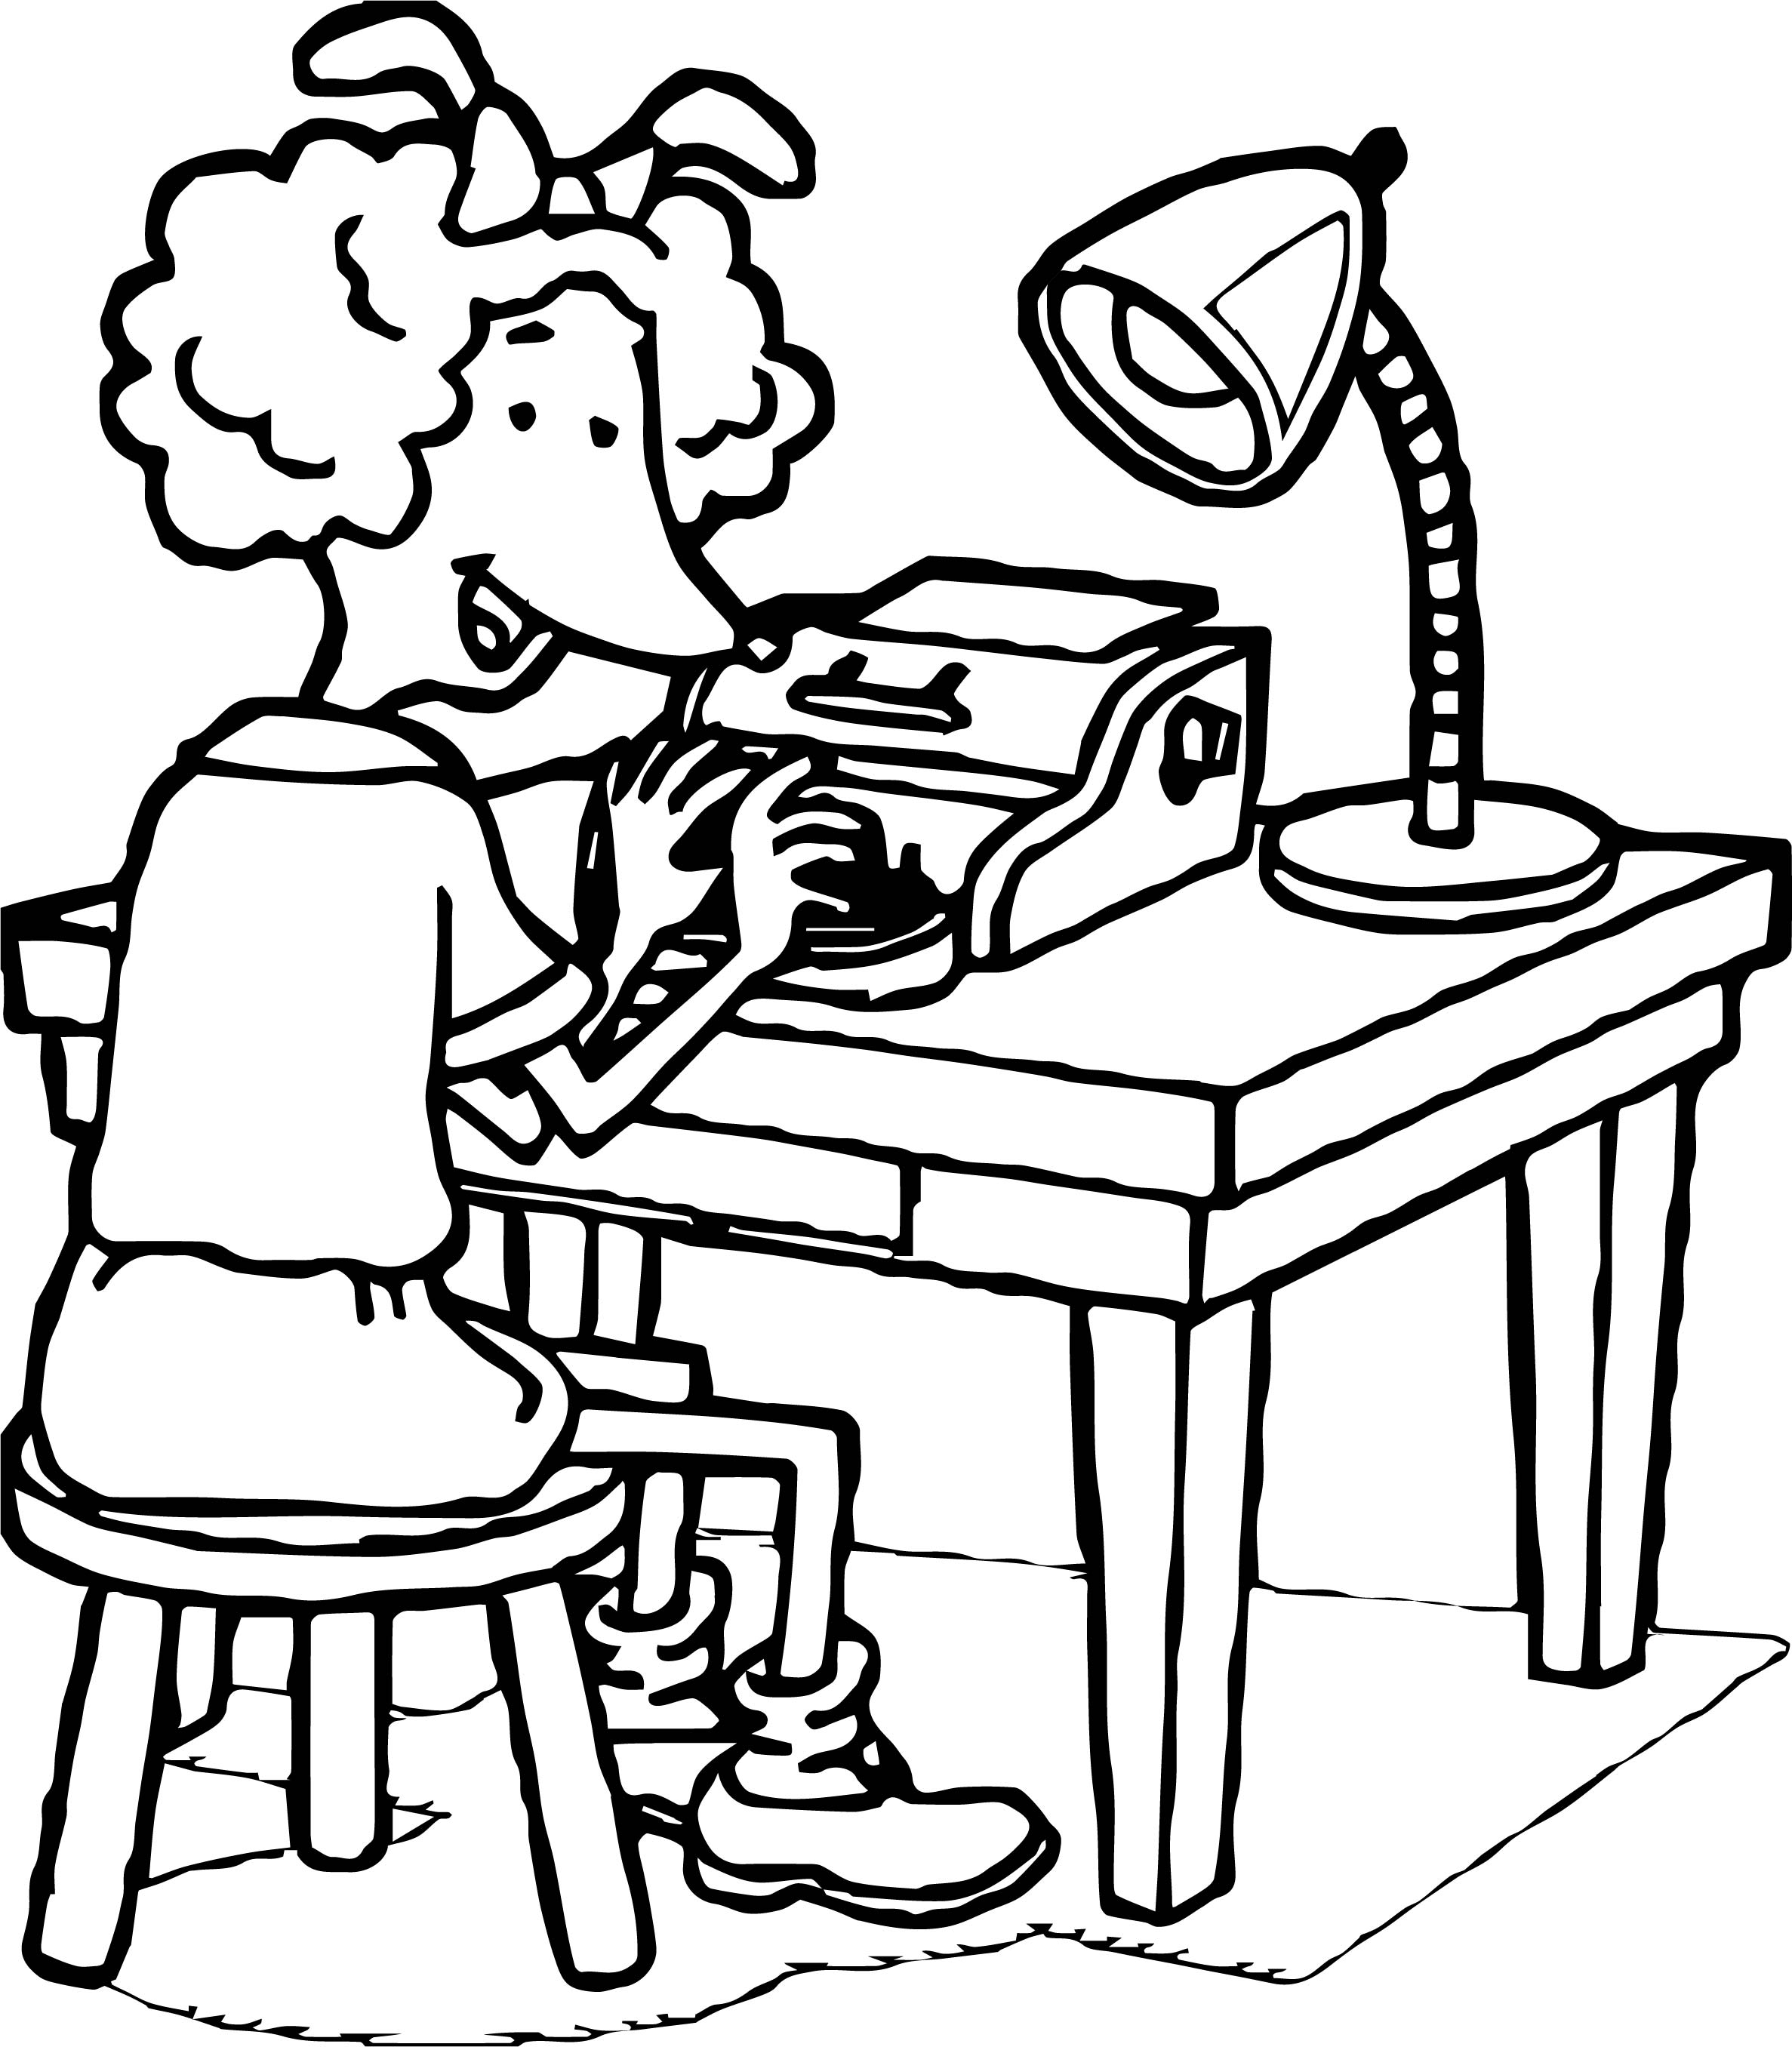 Braille Prunella Coloring Page